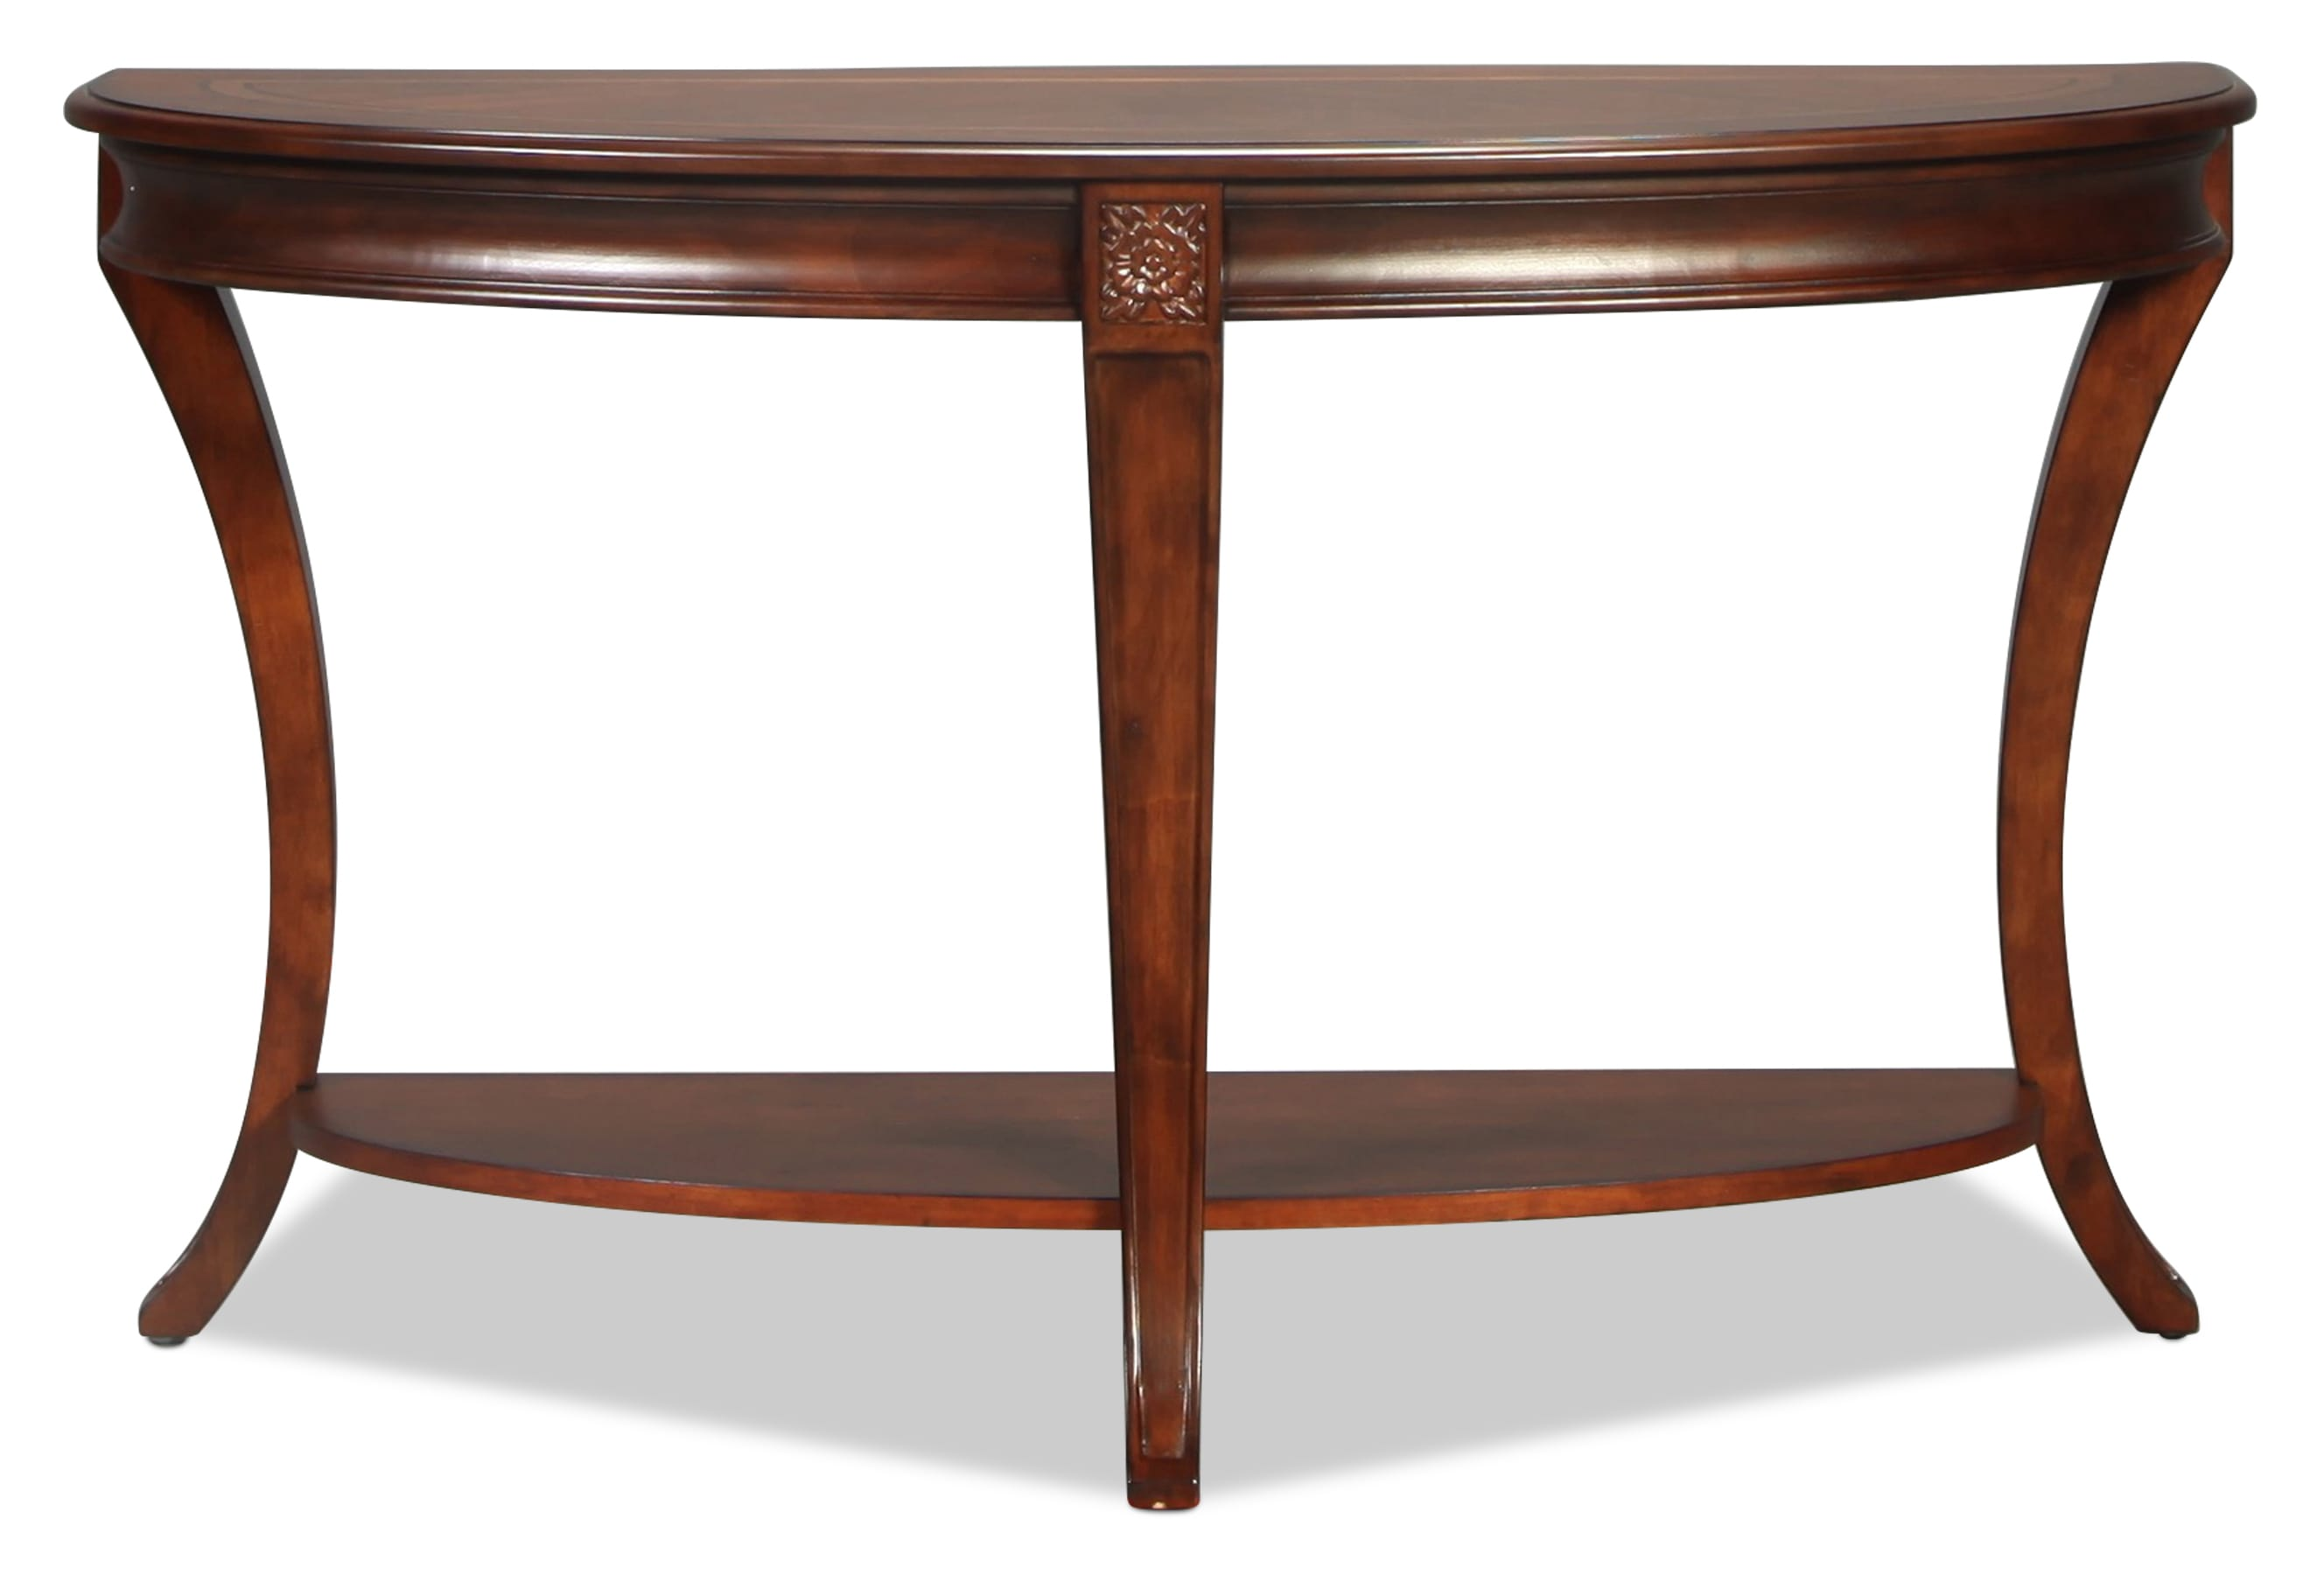 Winslet Sofa Table - Cherry